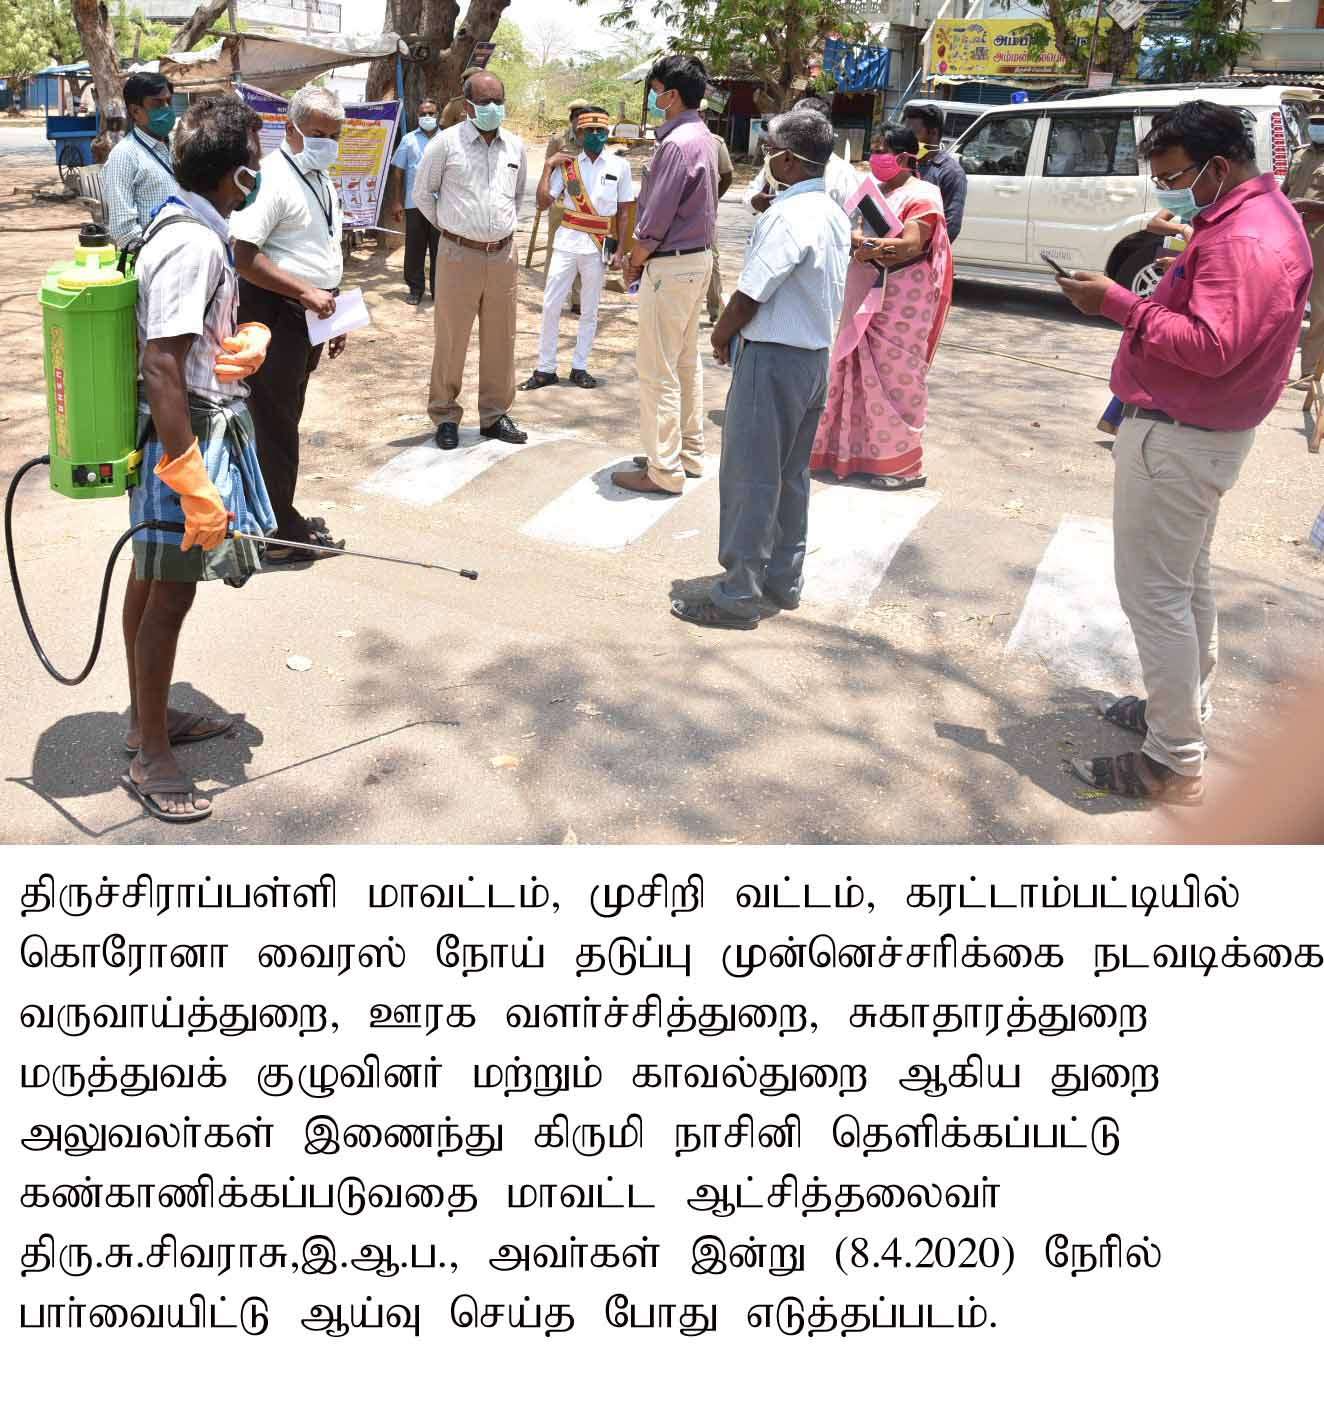 COVID-19 - District Collector Inspection at Musiri Taluk